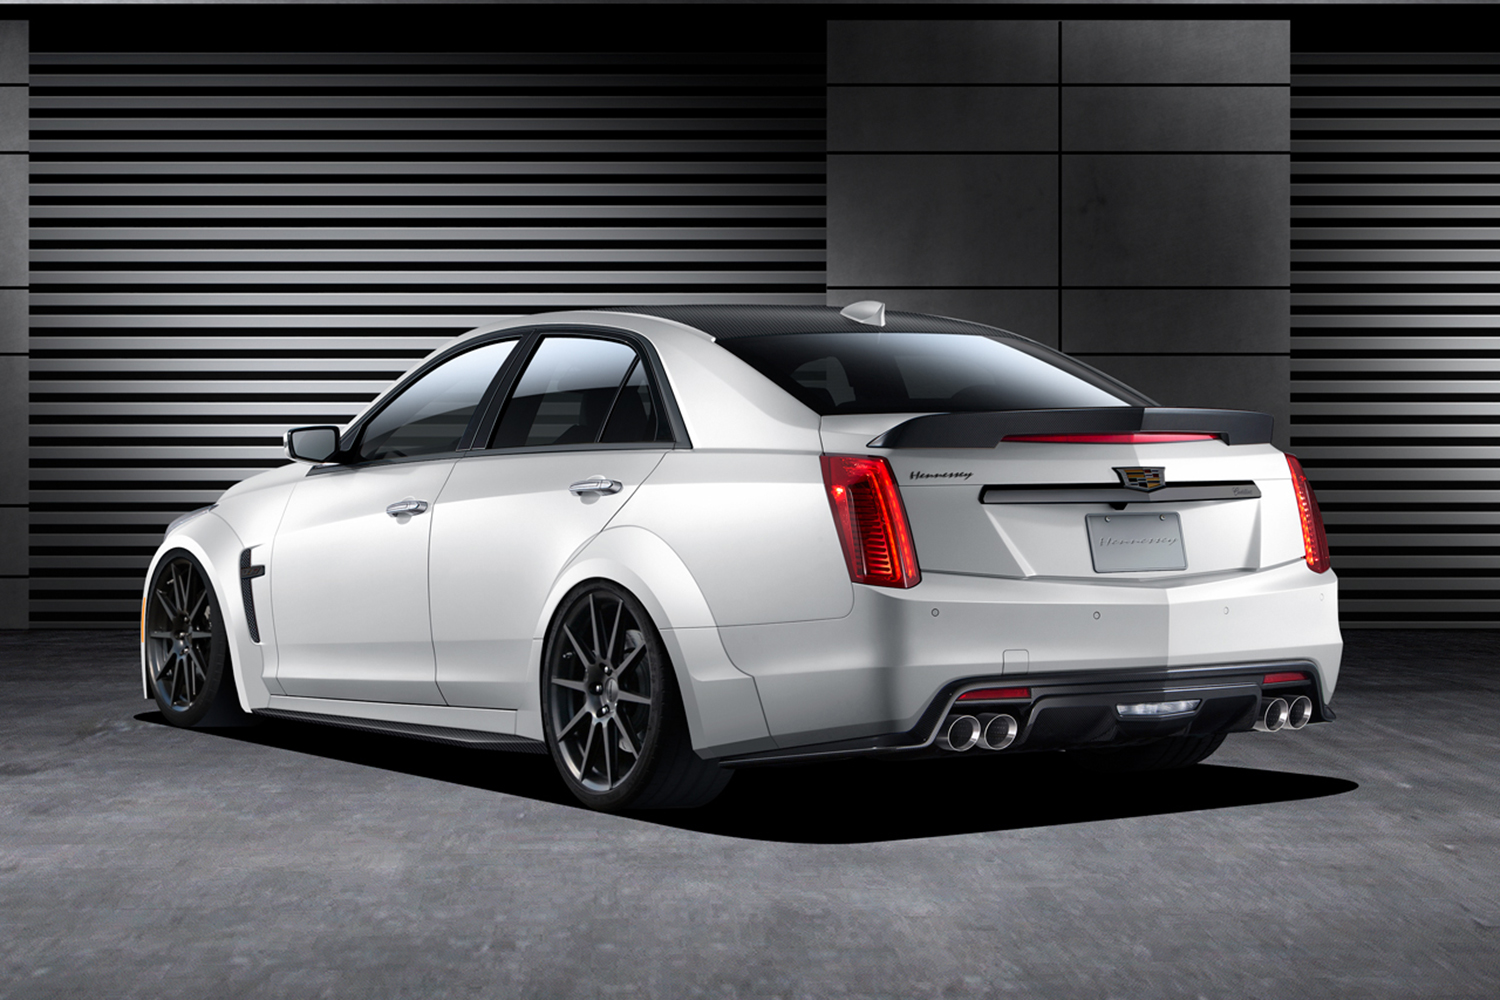 2016 Hennessey Cts V Rear